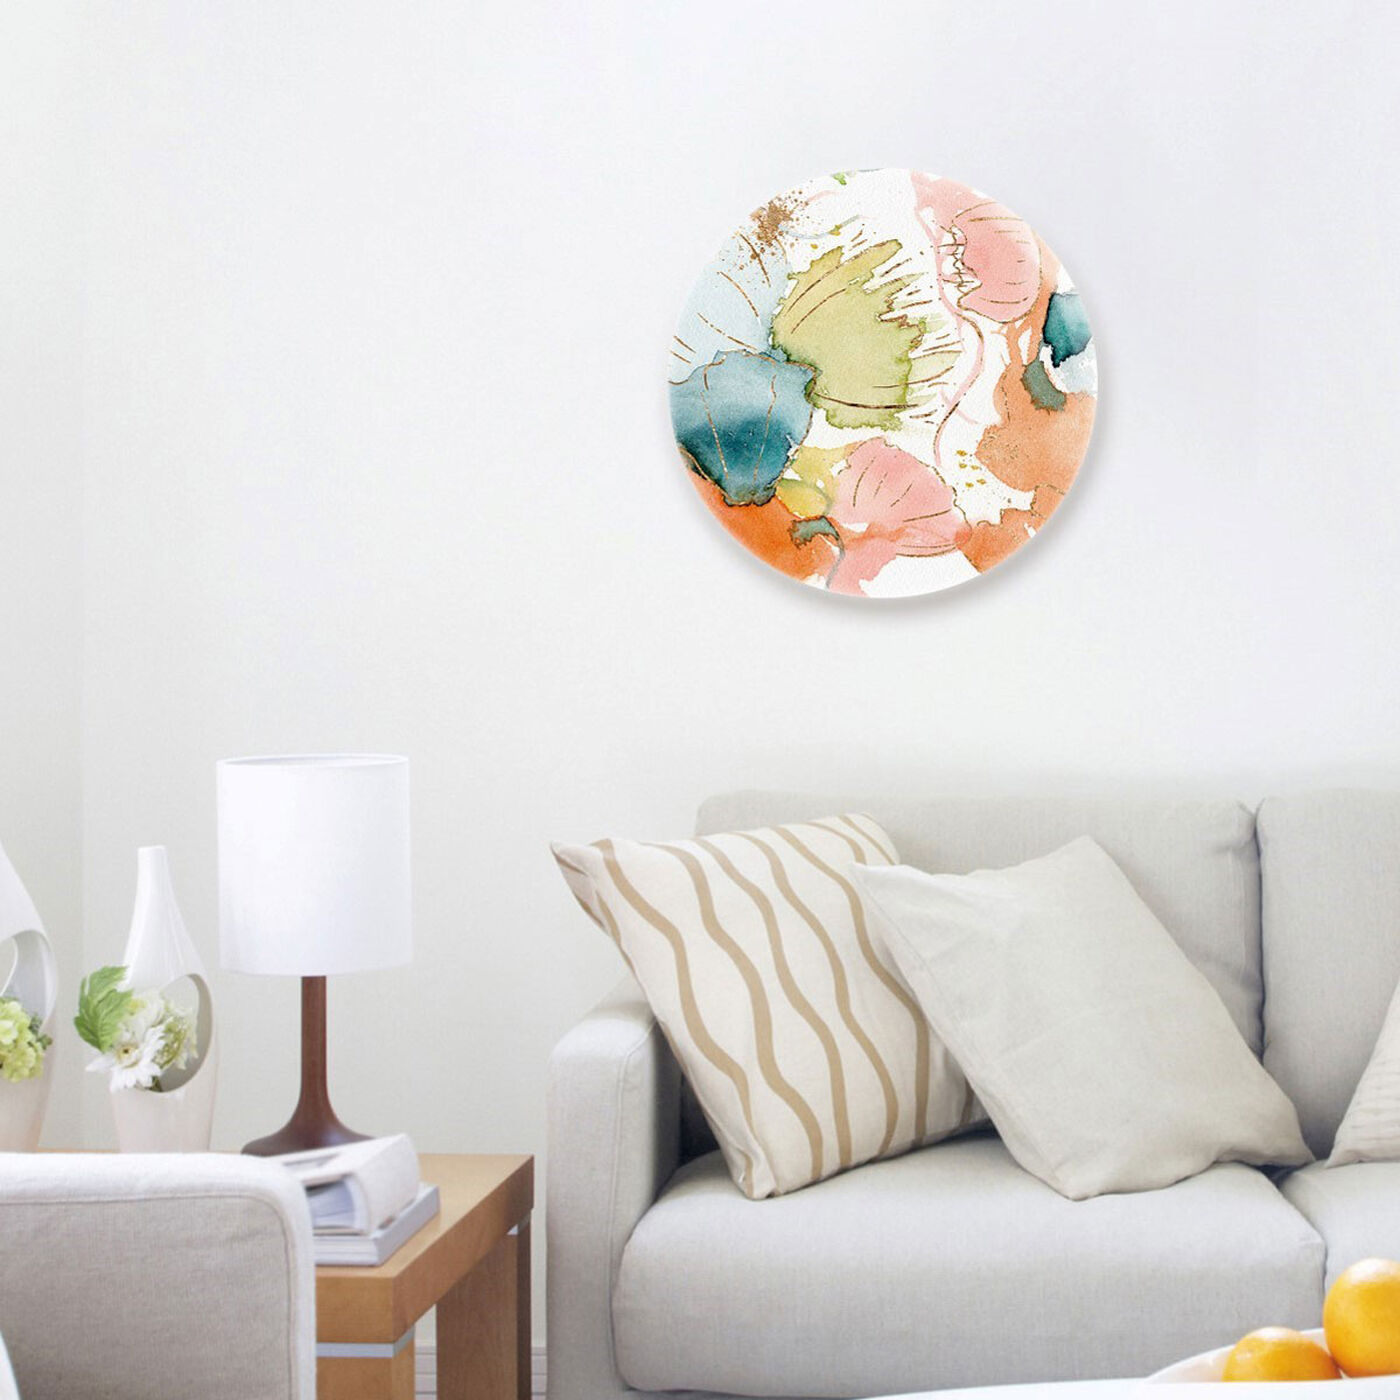 Hanging view of My Wild Garden Circle featuring abstract and watercolor art.